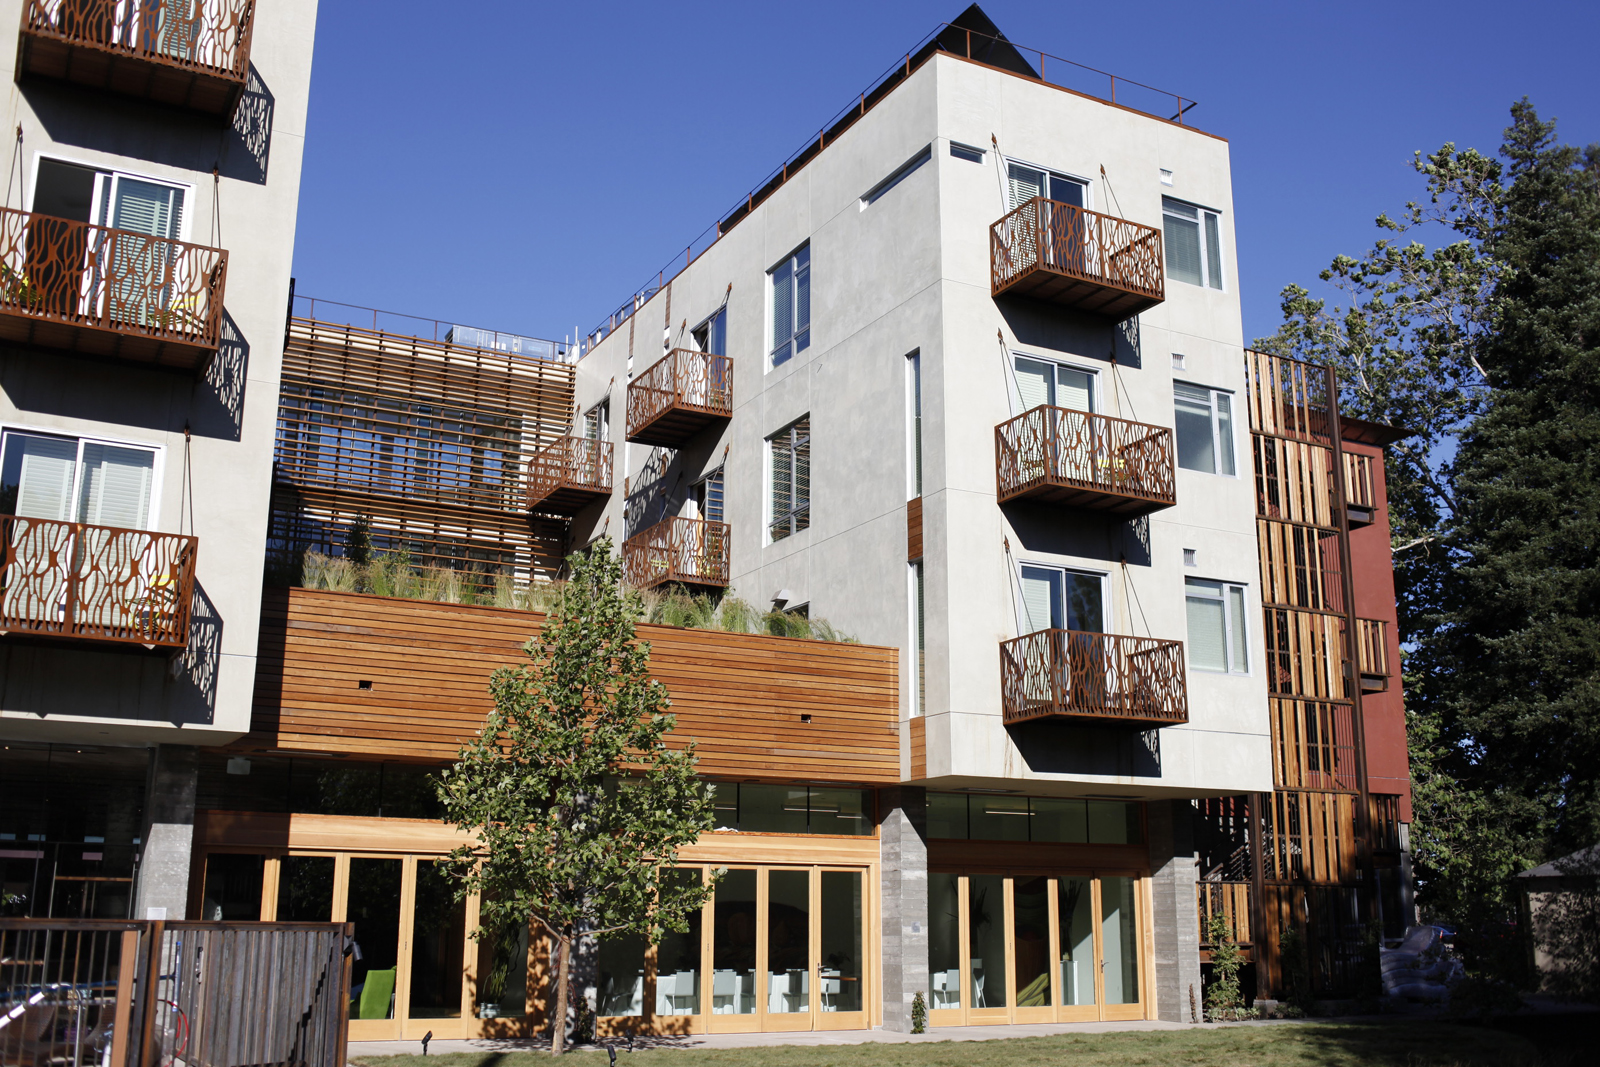 Here's the exterior of the hotel. Rusted balconies made of waterjet-cut Corten steel will gradually oxidize the surface of the walls. The shade screens on the stair and bridge are made of local, sustainably harvested redwood. Forty-five feet of sliding gl